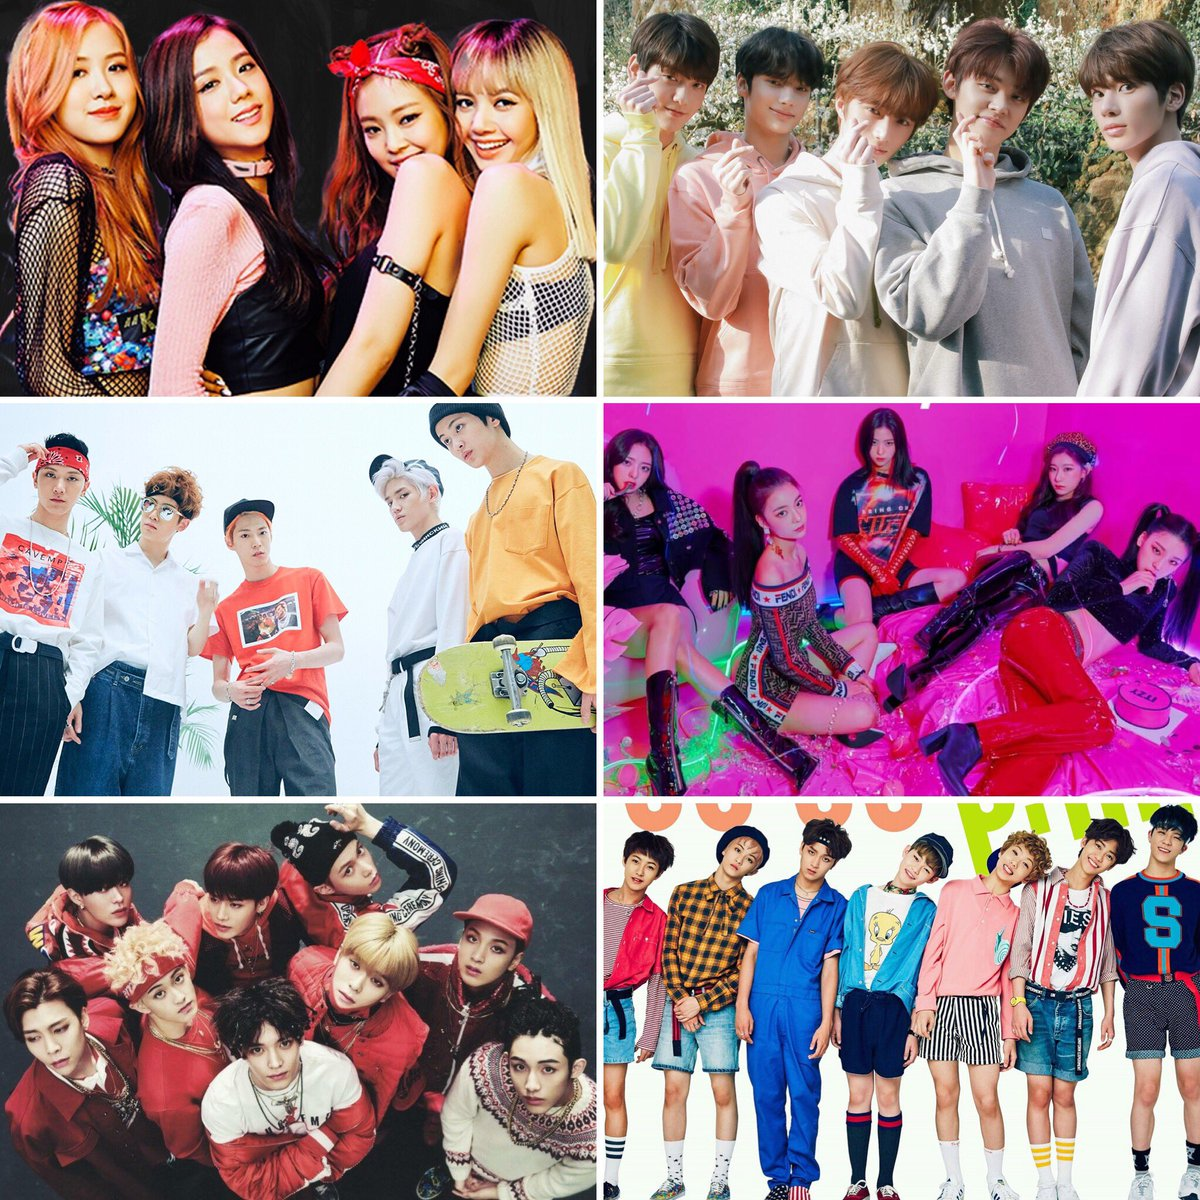 #KPop  Acts With The Highest Debut Singles on @Billboard's World Digital Song Sales Chart Ever:  No. 1 Debut - BLACKPINK and Tomorrow X Together  No. 2 Debut - NCT U, ITZY, NCT 127 and NCT Dream  More here:  https://www. billboard.com/articles/colum ns/chart-beat/8521896/itzy-social-50-debut-icy-comeback  … <br>http://pic.twitter.com/0ea1Xdq5nN